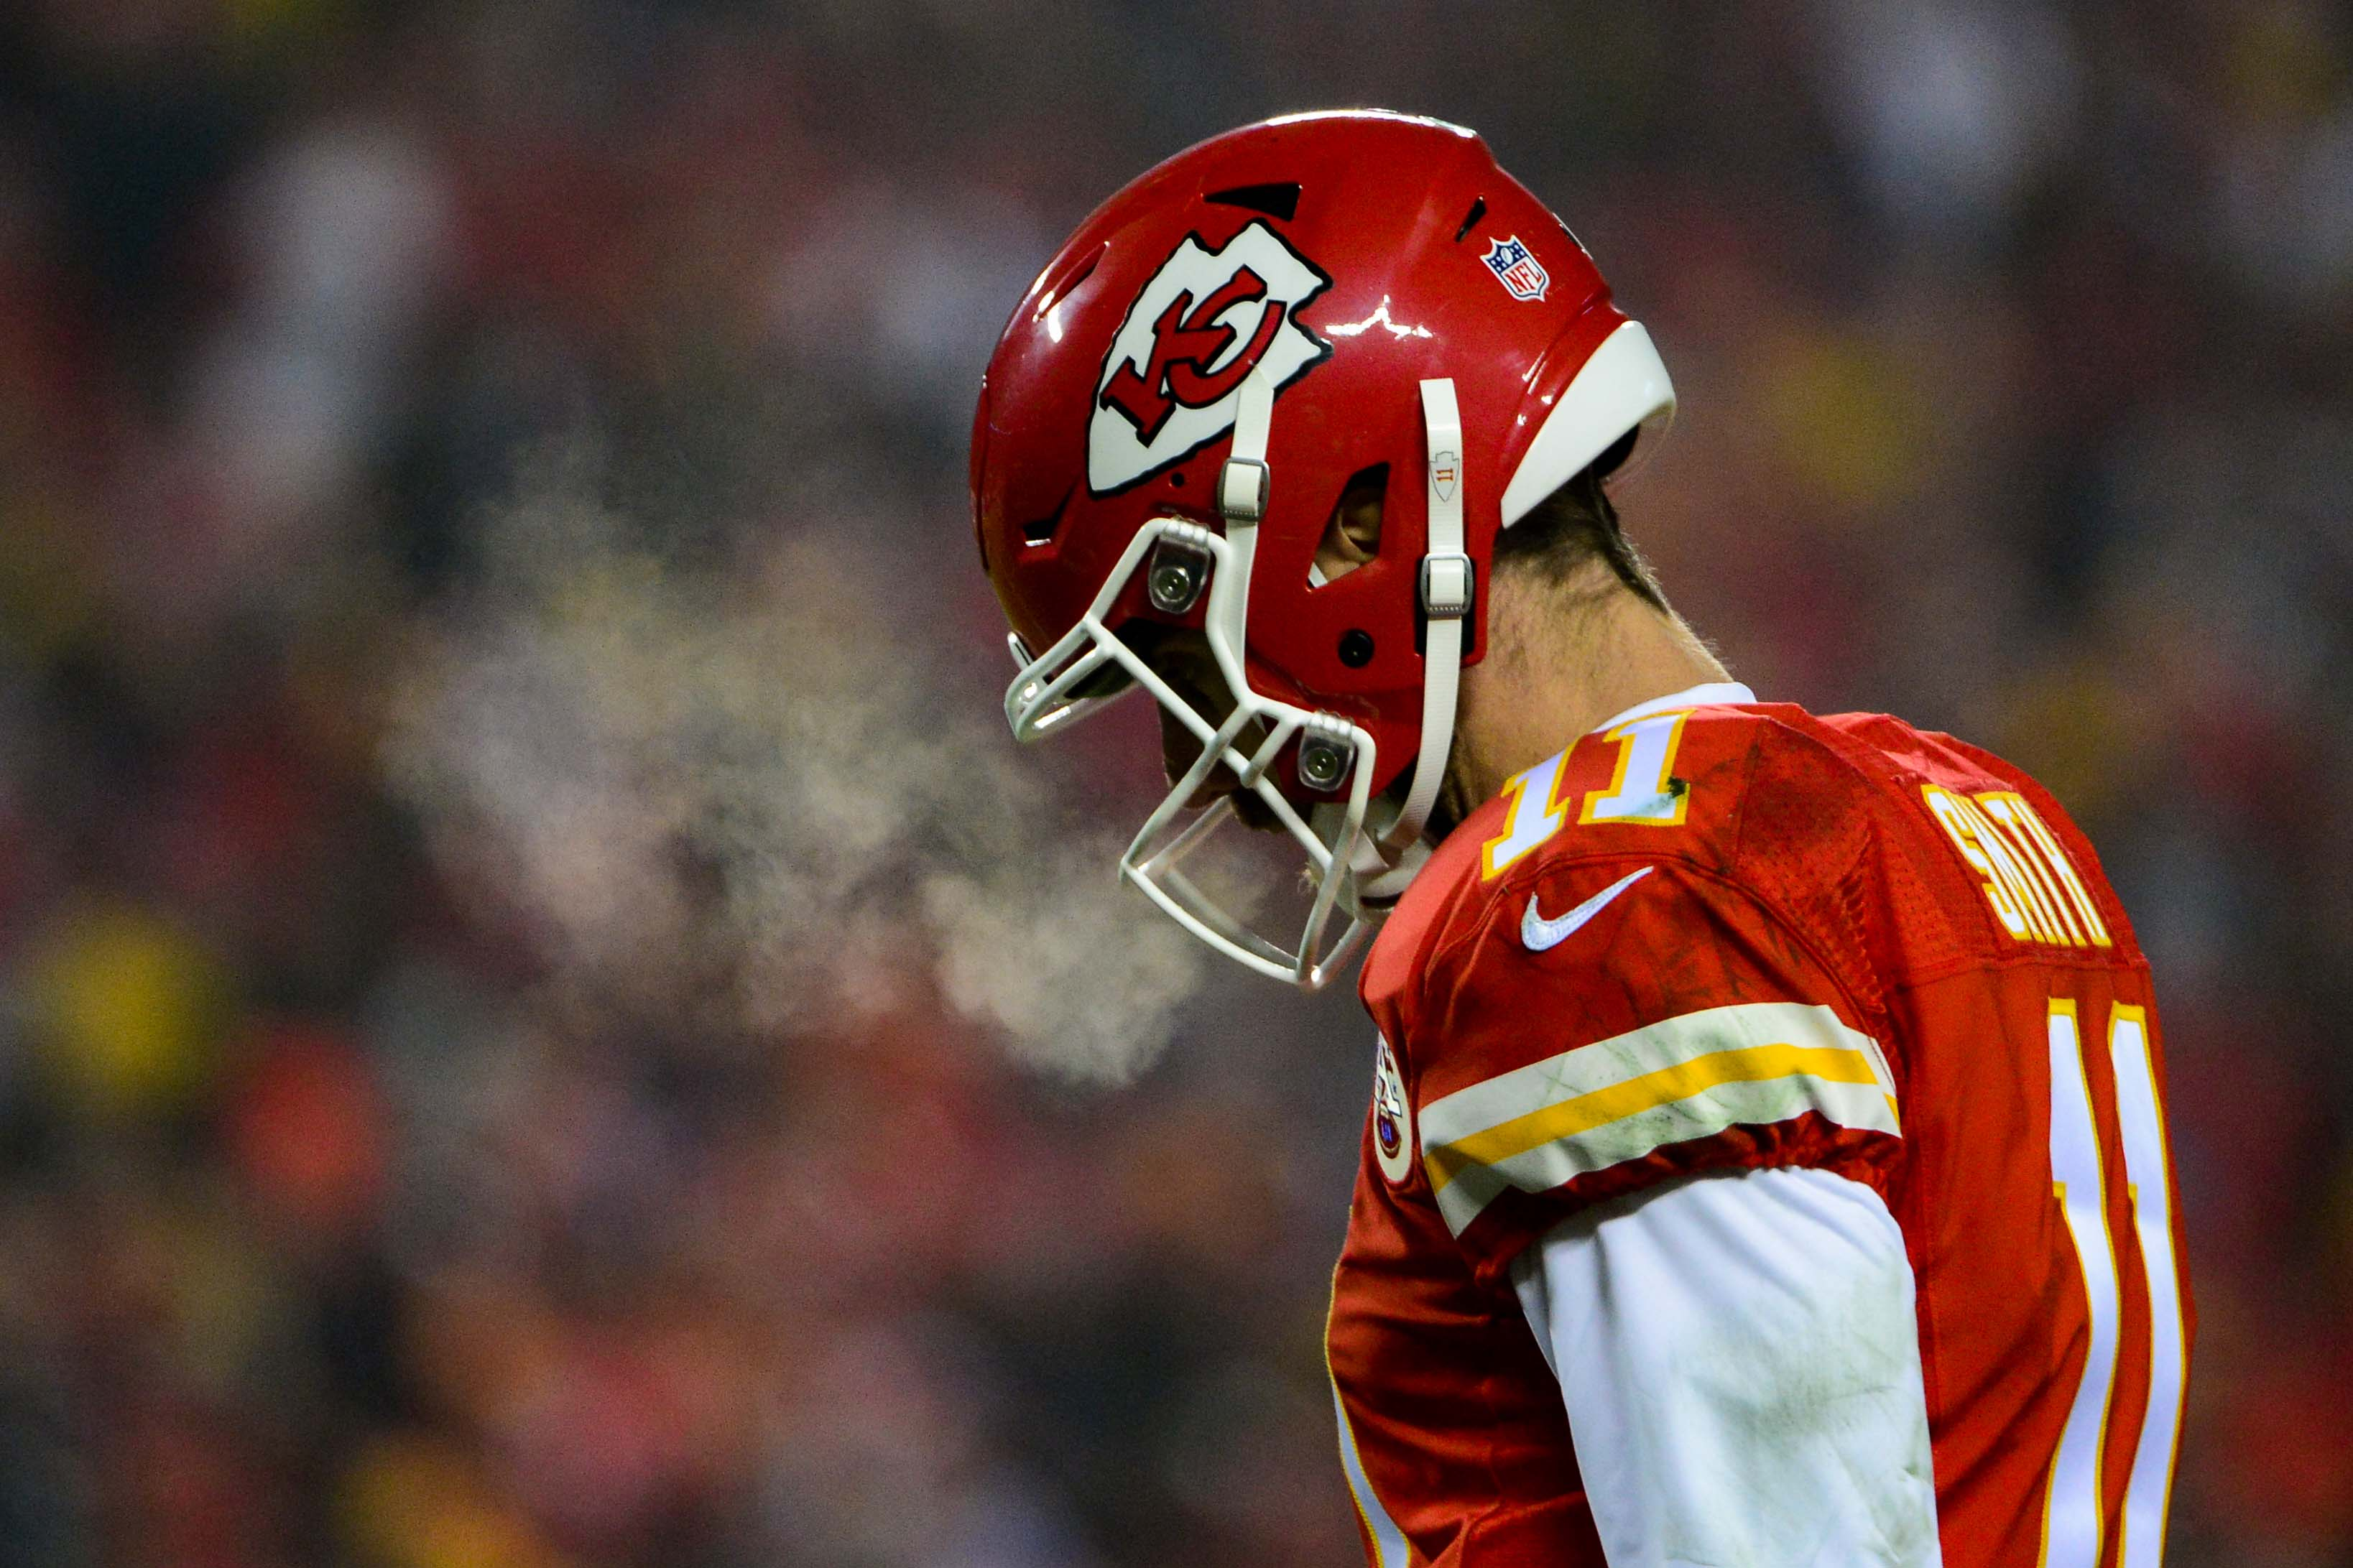 9813037-nfl-afc-divisional-pittsburgh-steelers-at-kansas-city-chiefs